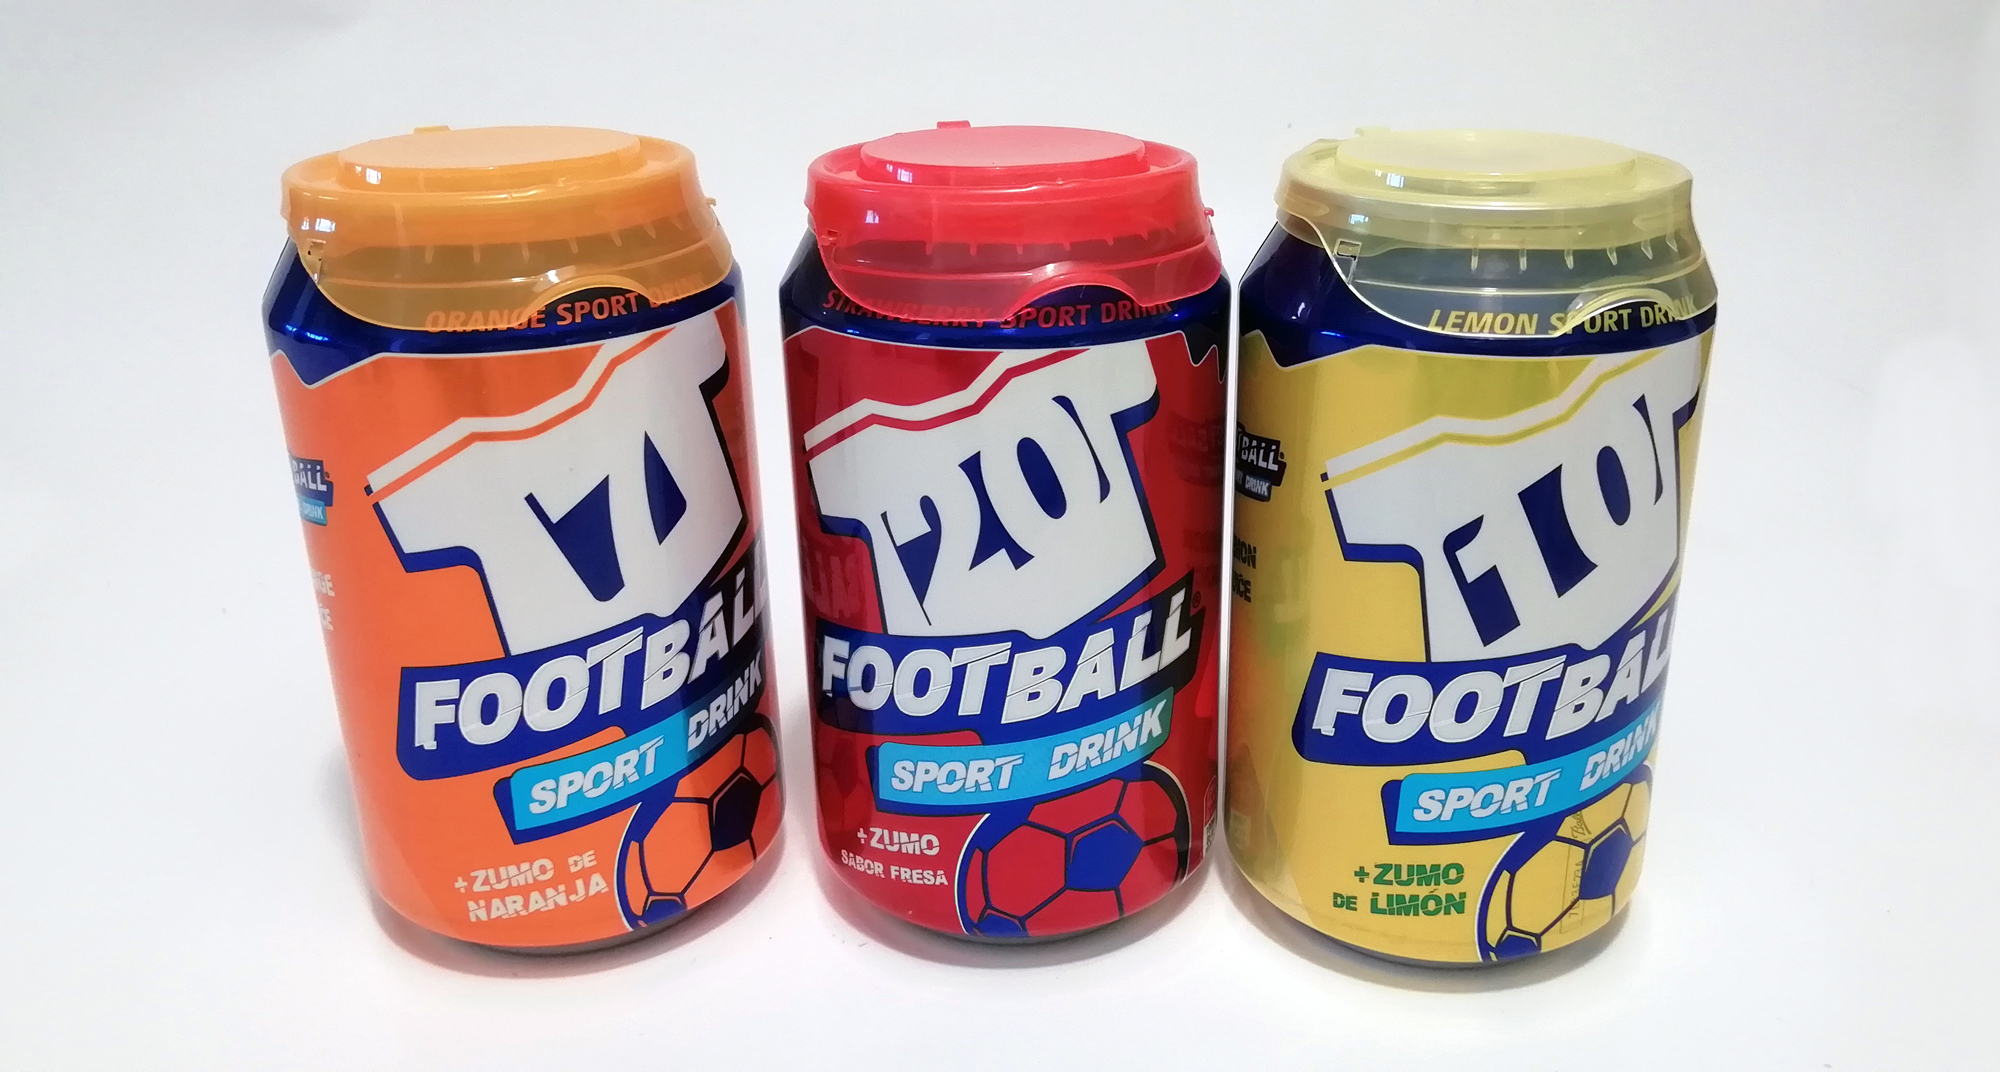 Packaging de bebida isotónica FootBall Drink.